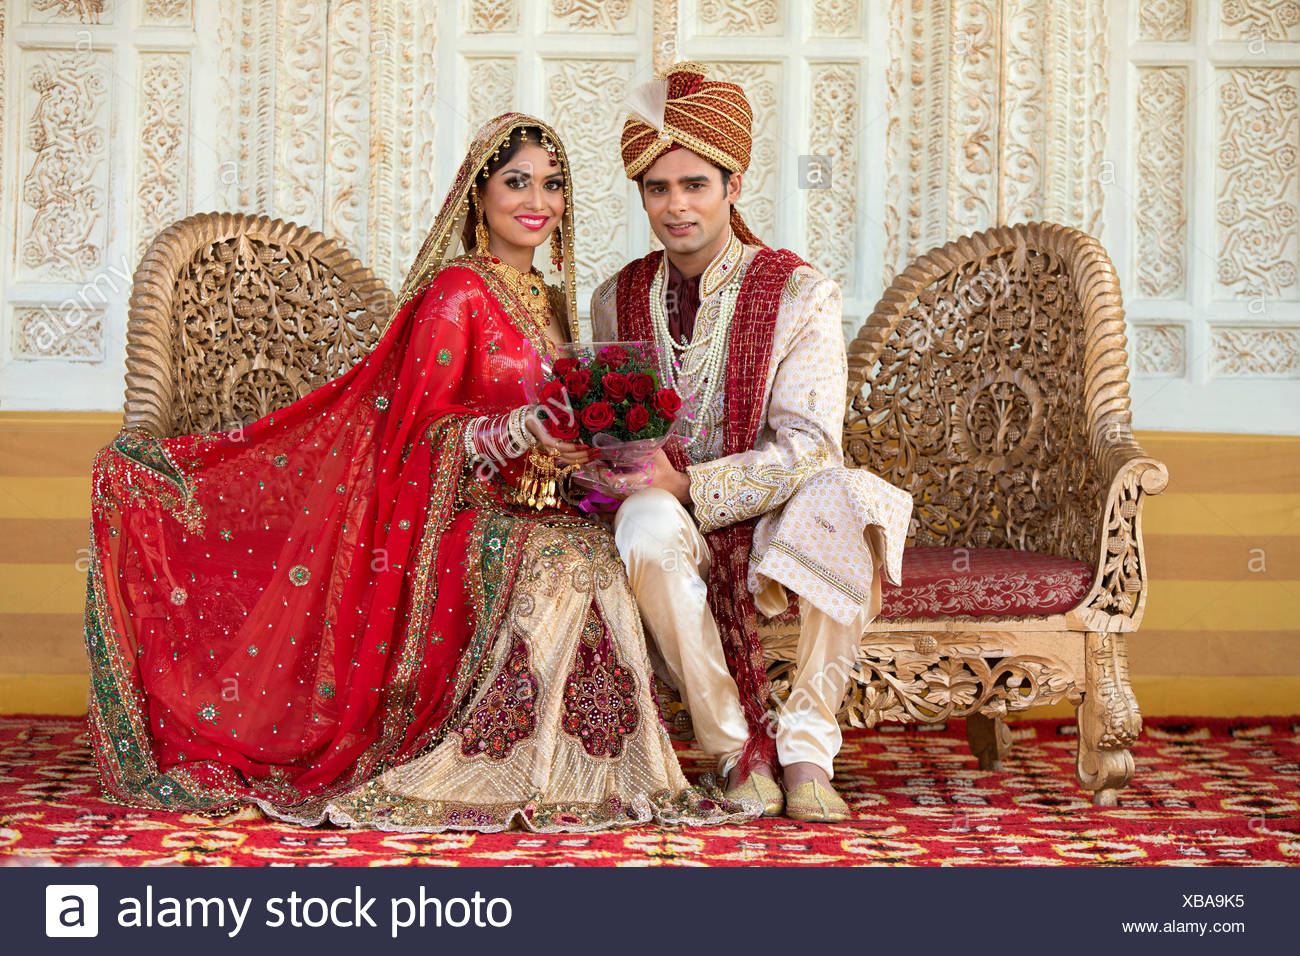 Indian Marriage Couple Full View High Resolution Stock Photography And Images Alamy